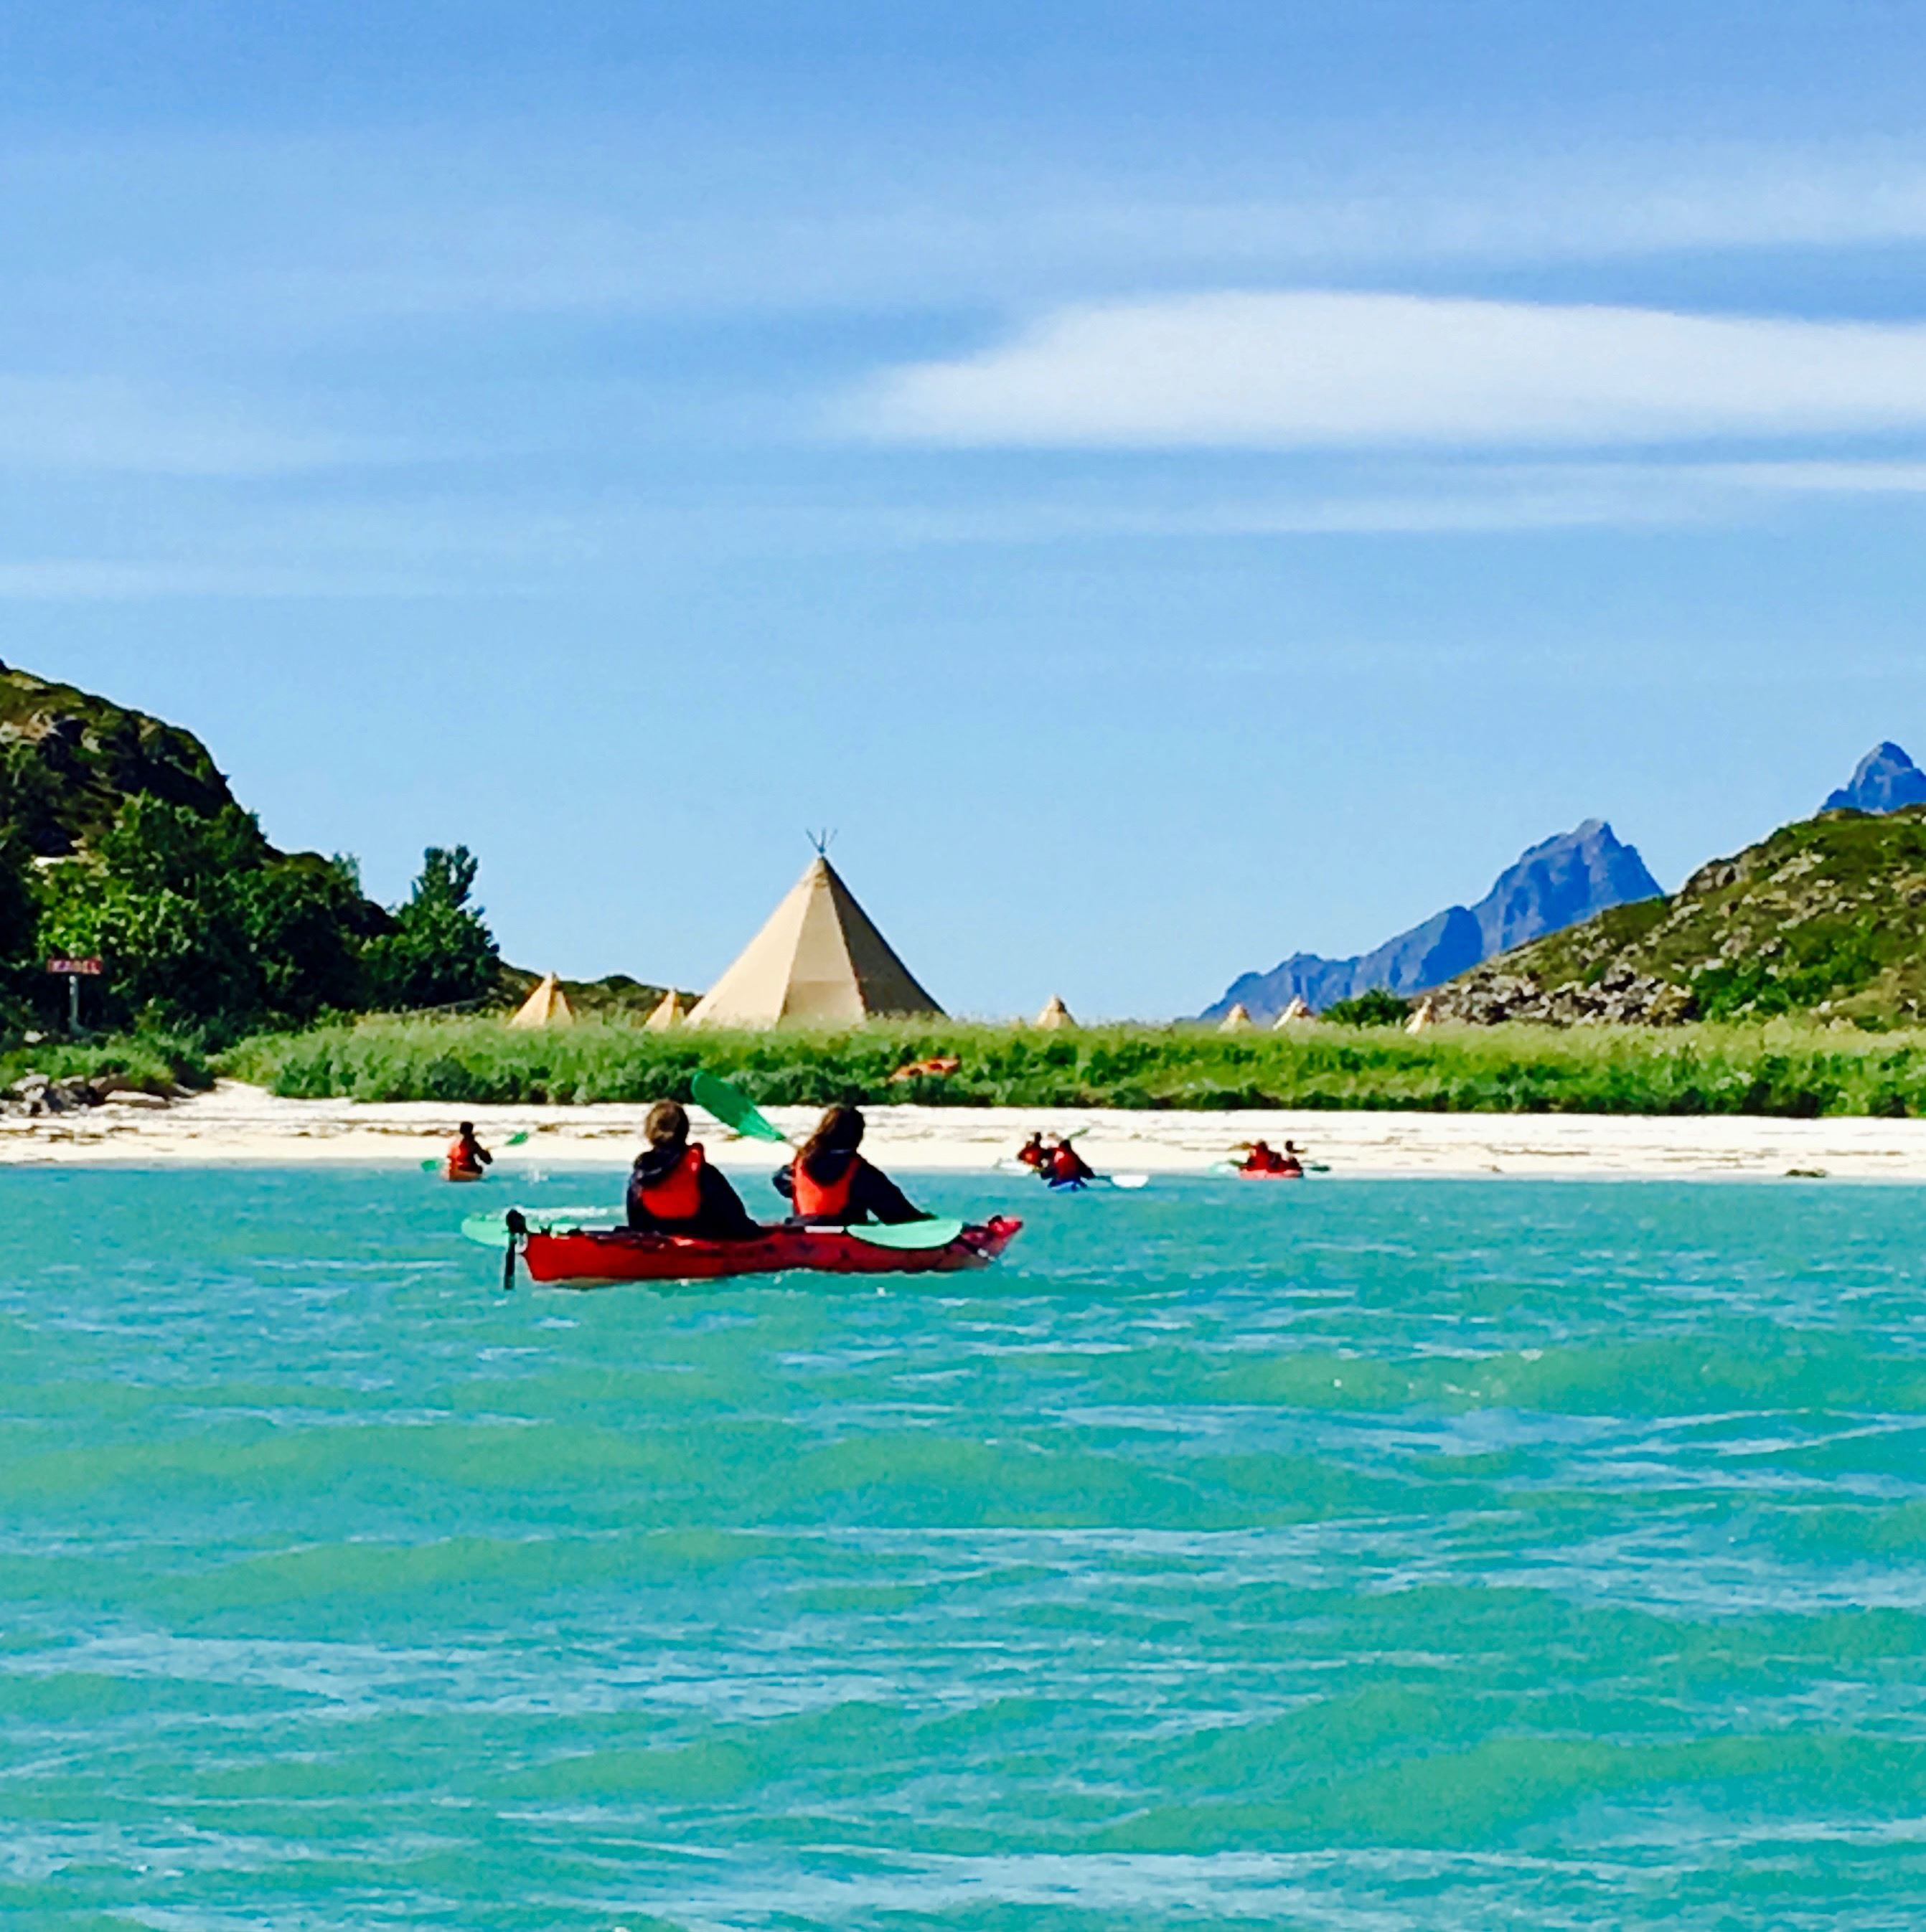 Cruise & Kayak in Lofoten's Little Hawaii